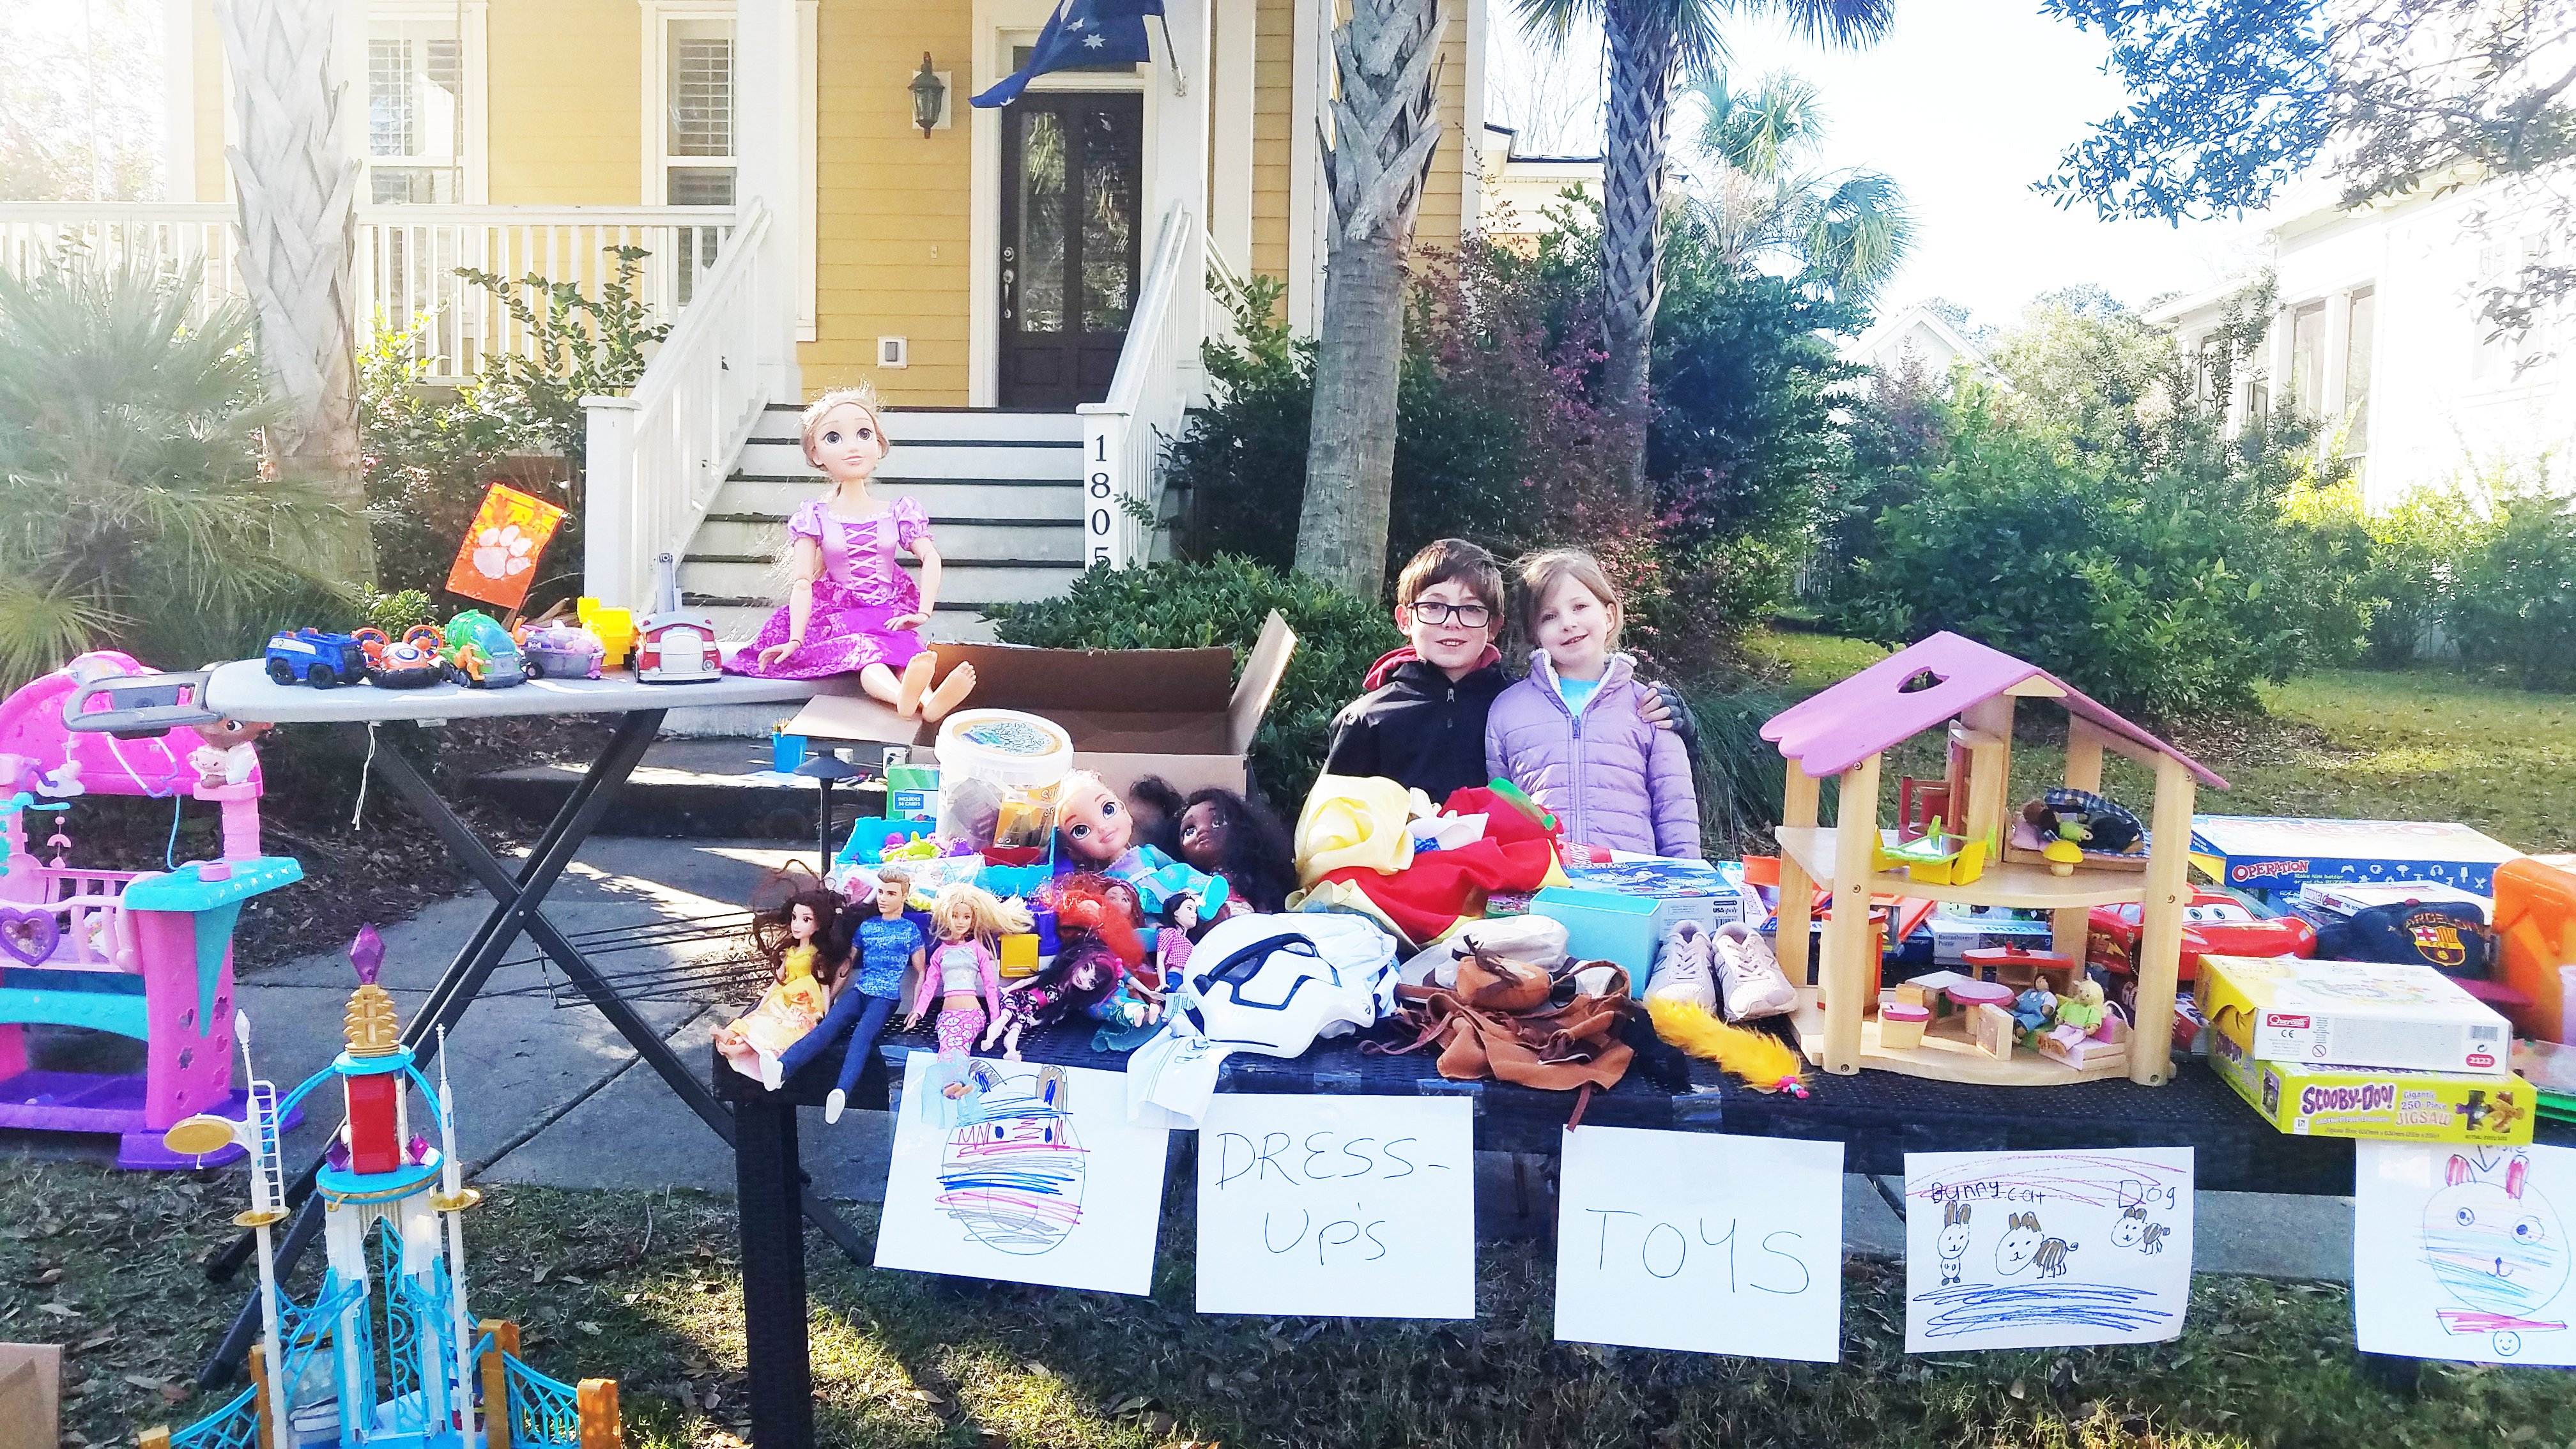 Maisie and Max Scanlon of Australia and Daniel Island were prepared to sell their old toys at the island-wide yard sale.